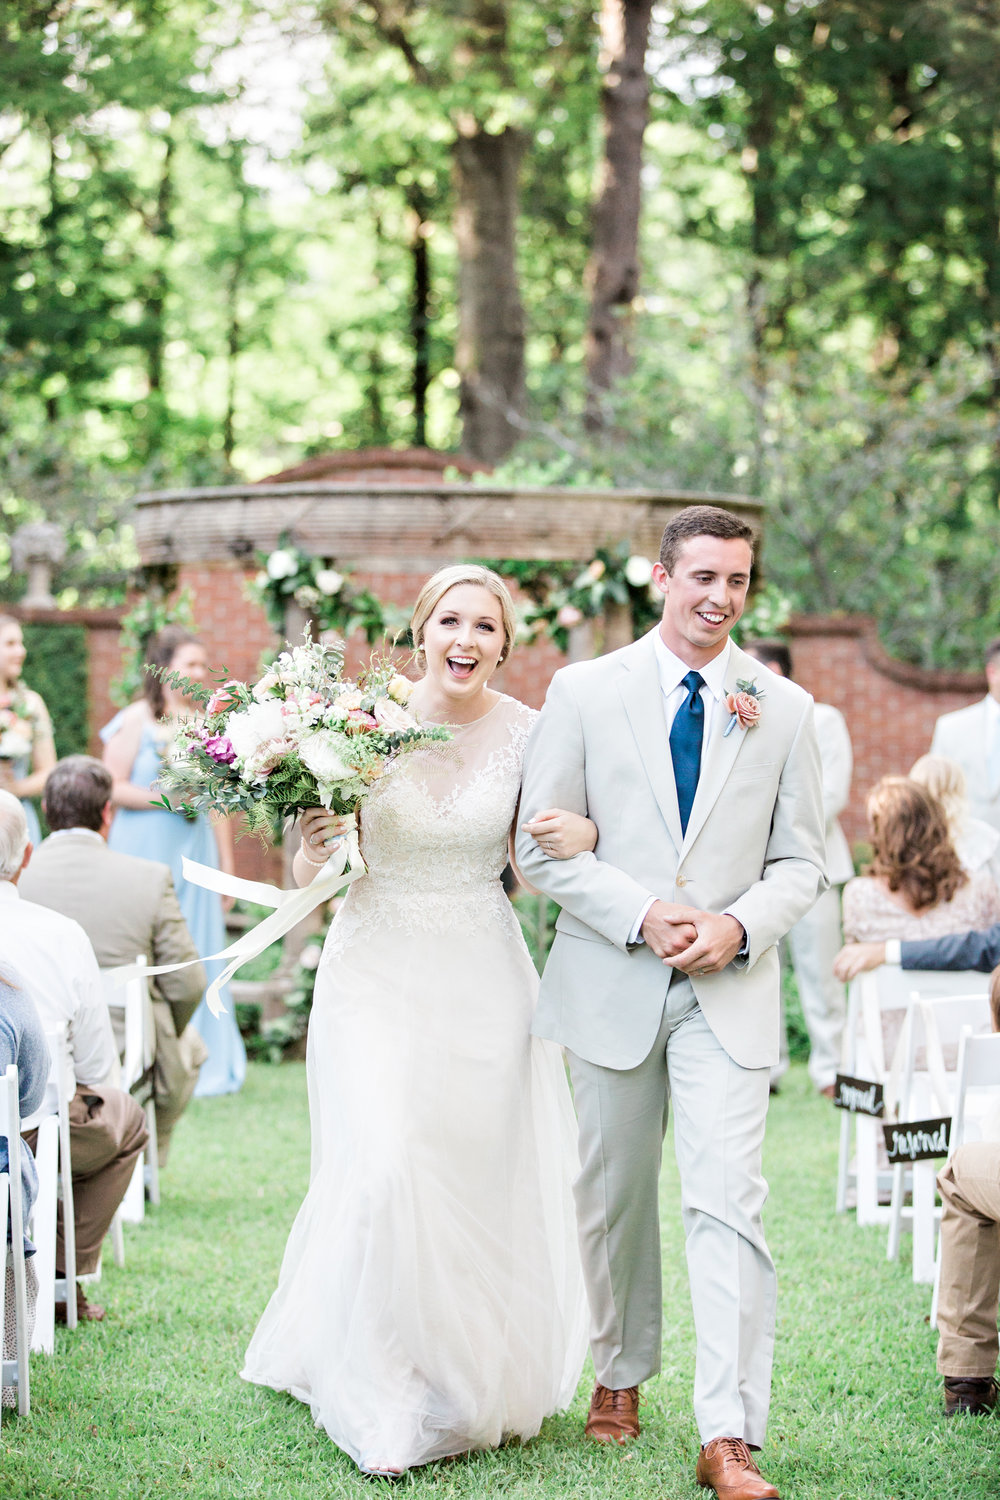 Matty-Drollette-Photography-Alabama-Weddings-Sara and Logan-139.jpg